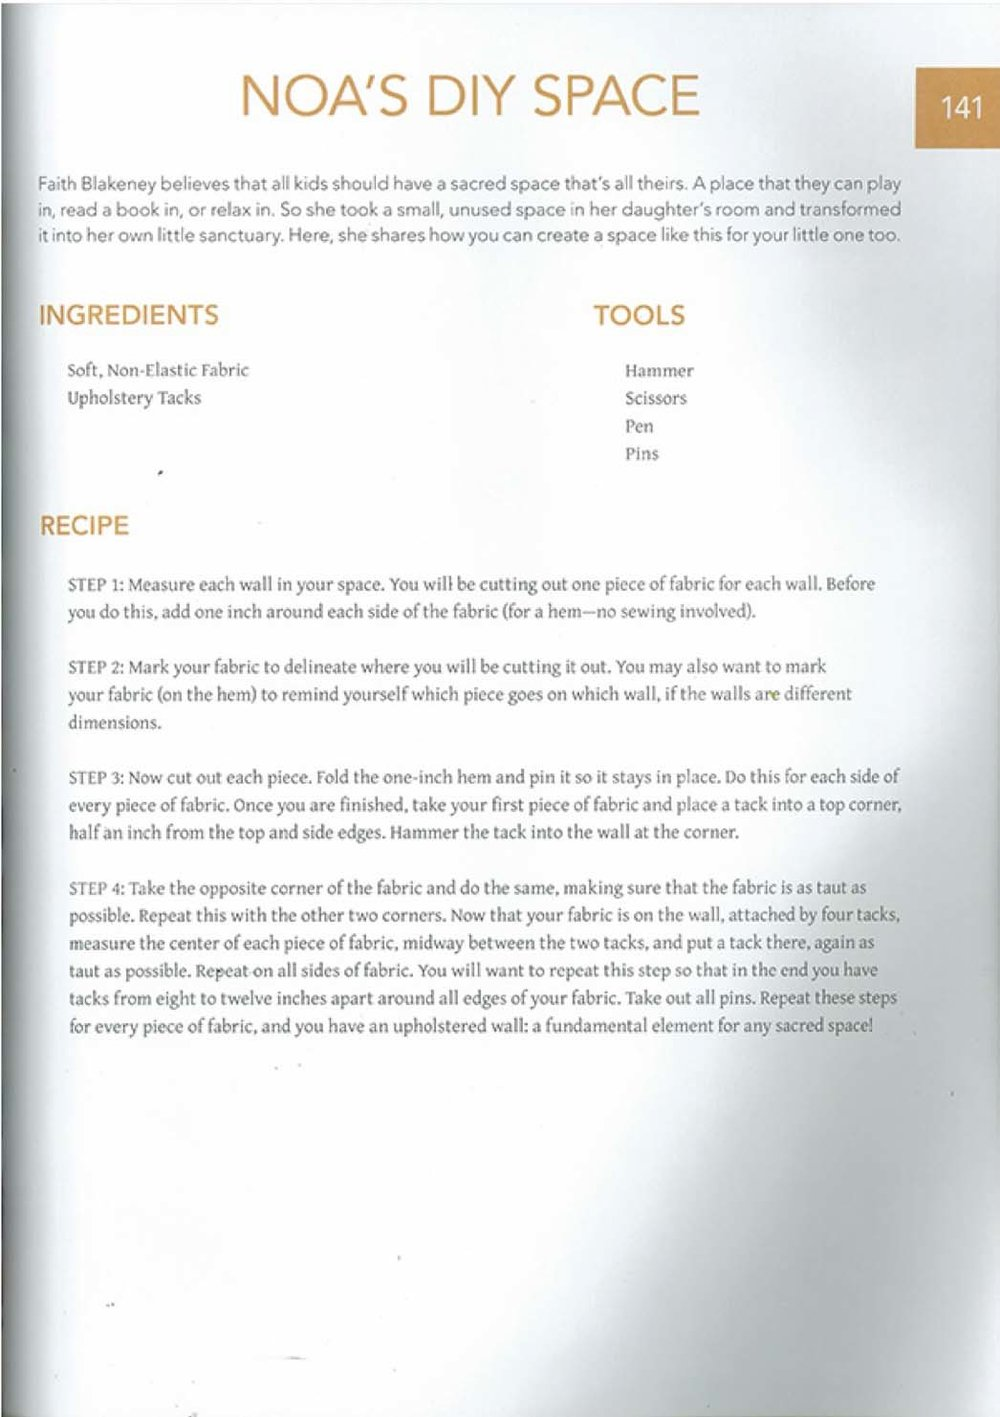 Design Cookbook2-cropped.jpg